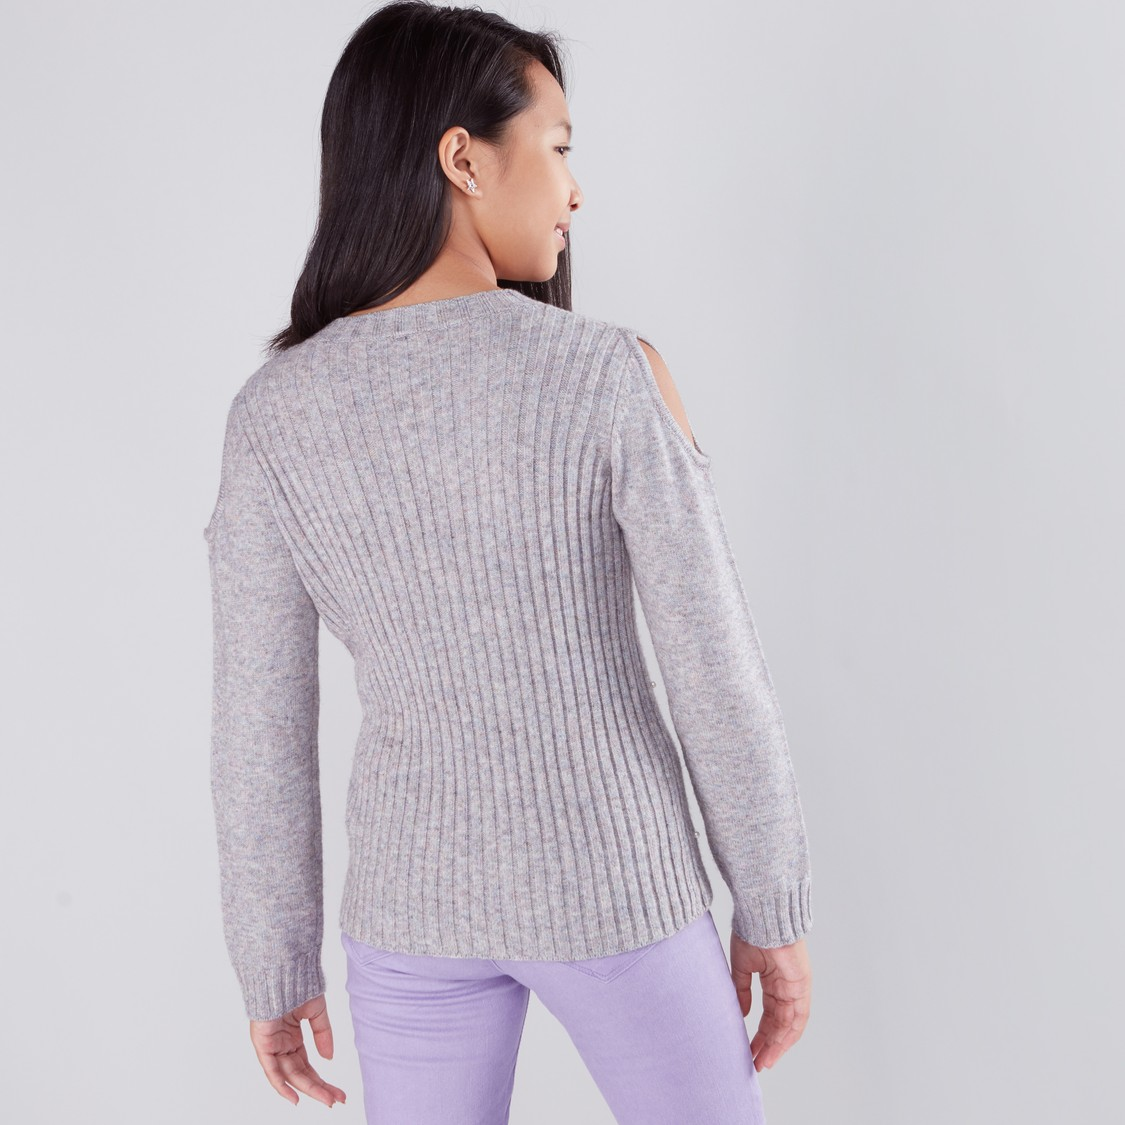 Pearl and Cutout Detail Long Sleeves Sweater